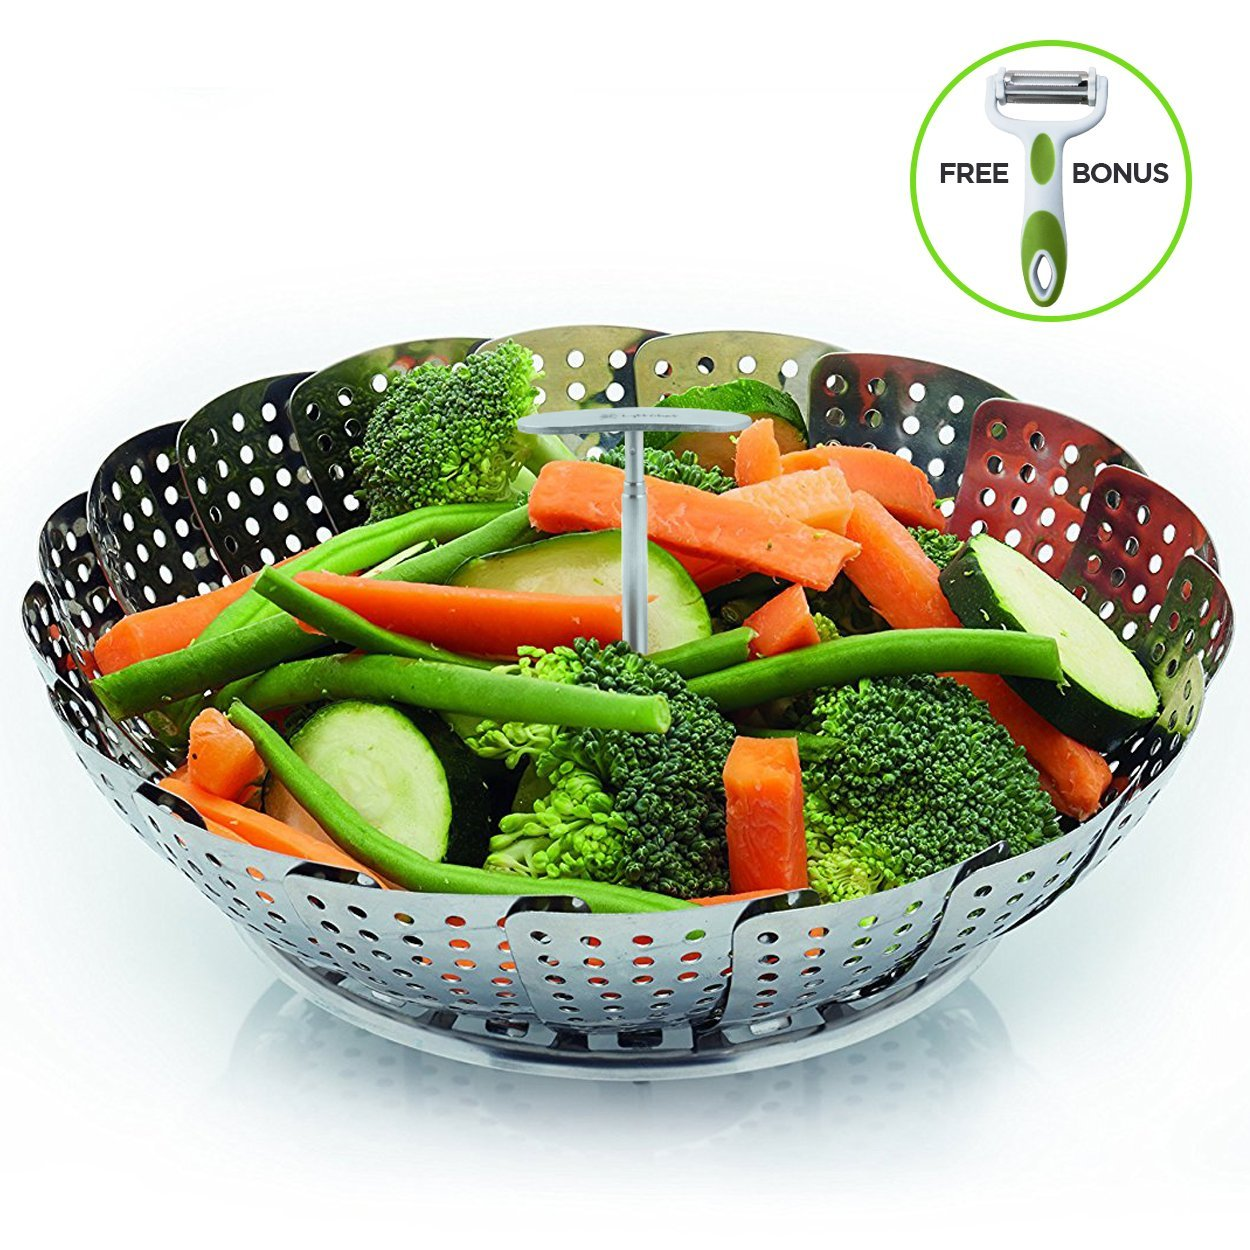 Stainless Steel Vegetable Steamer Basket By LyftChef: Metal Instant Pot Food Steamer, Strainer Insert For Veggies, Eggs, Fruit–Expandable Multifunction Steaming Pot – Julienne Peeler Included